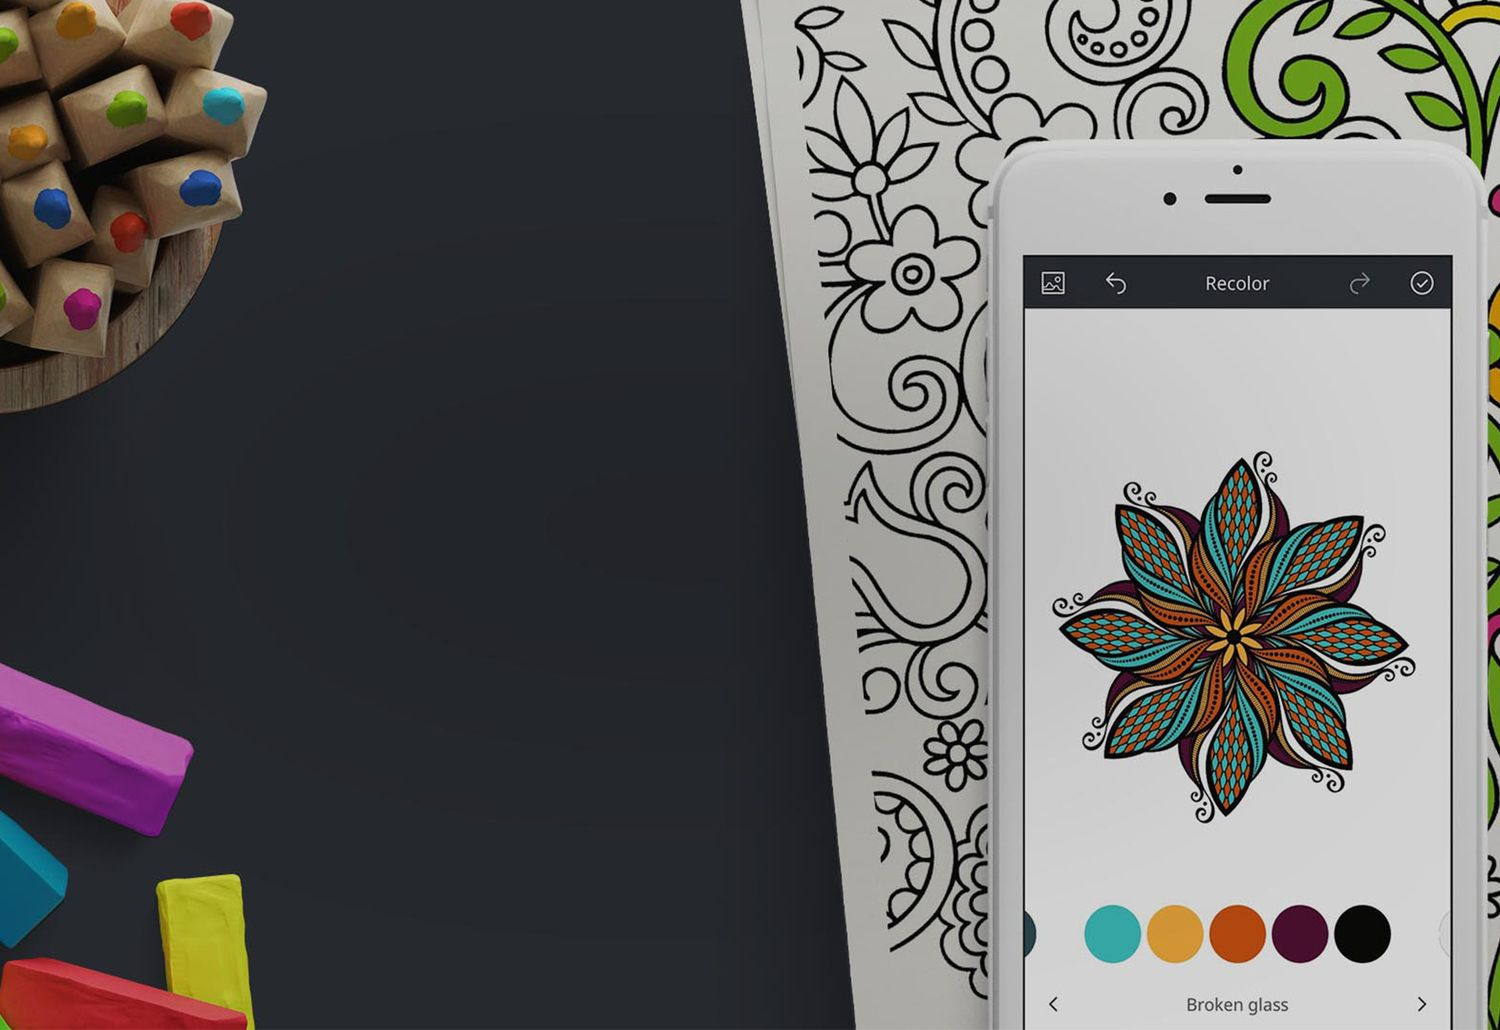 Turn Your Phone Into A Coloring Book With This Free App Coloring Book App Coloring Books Recolor